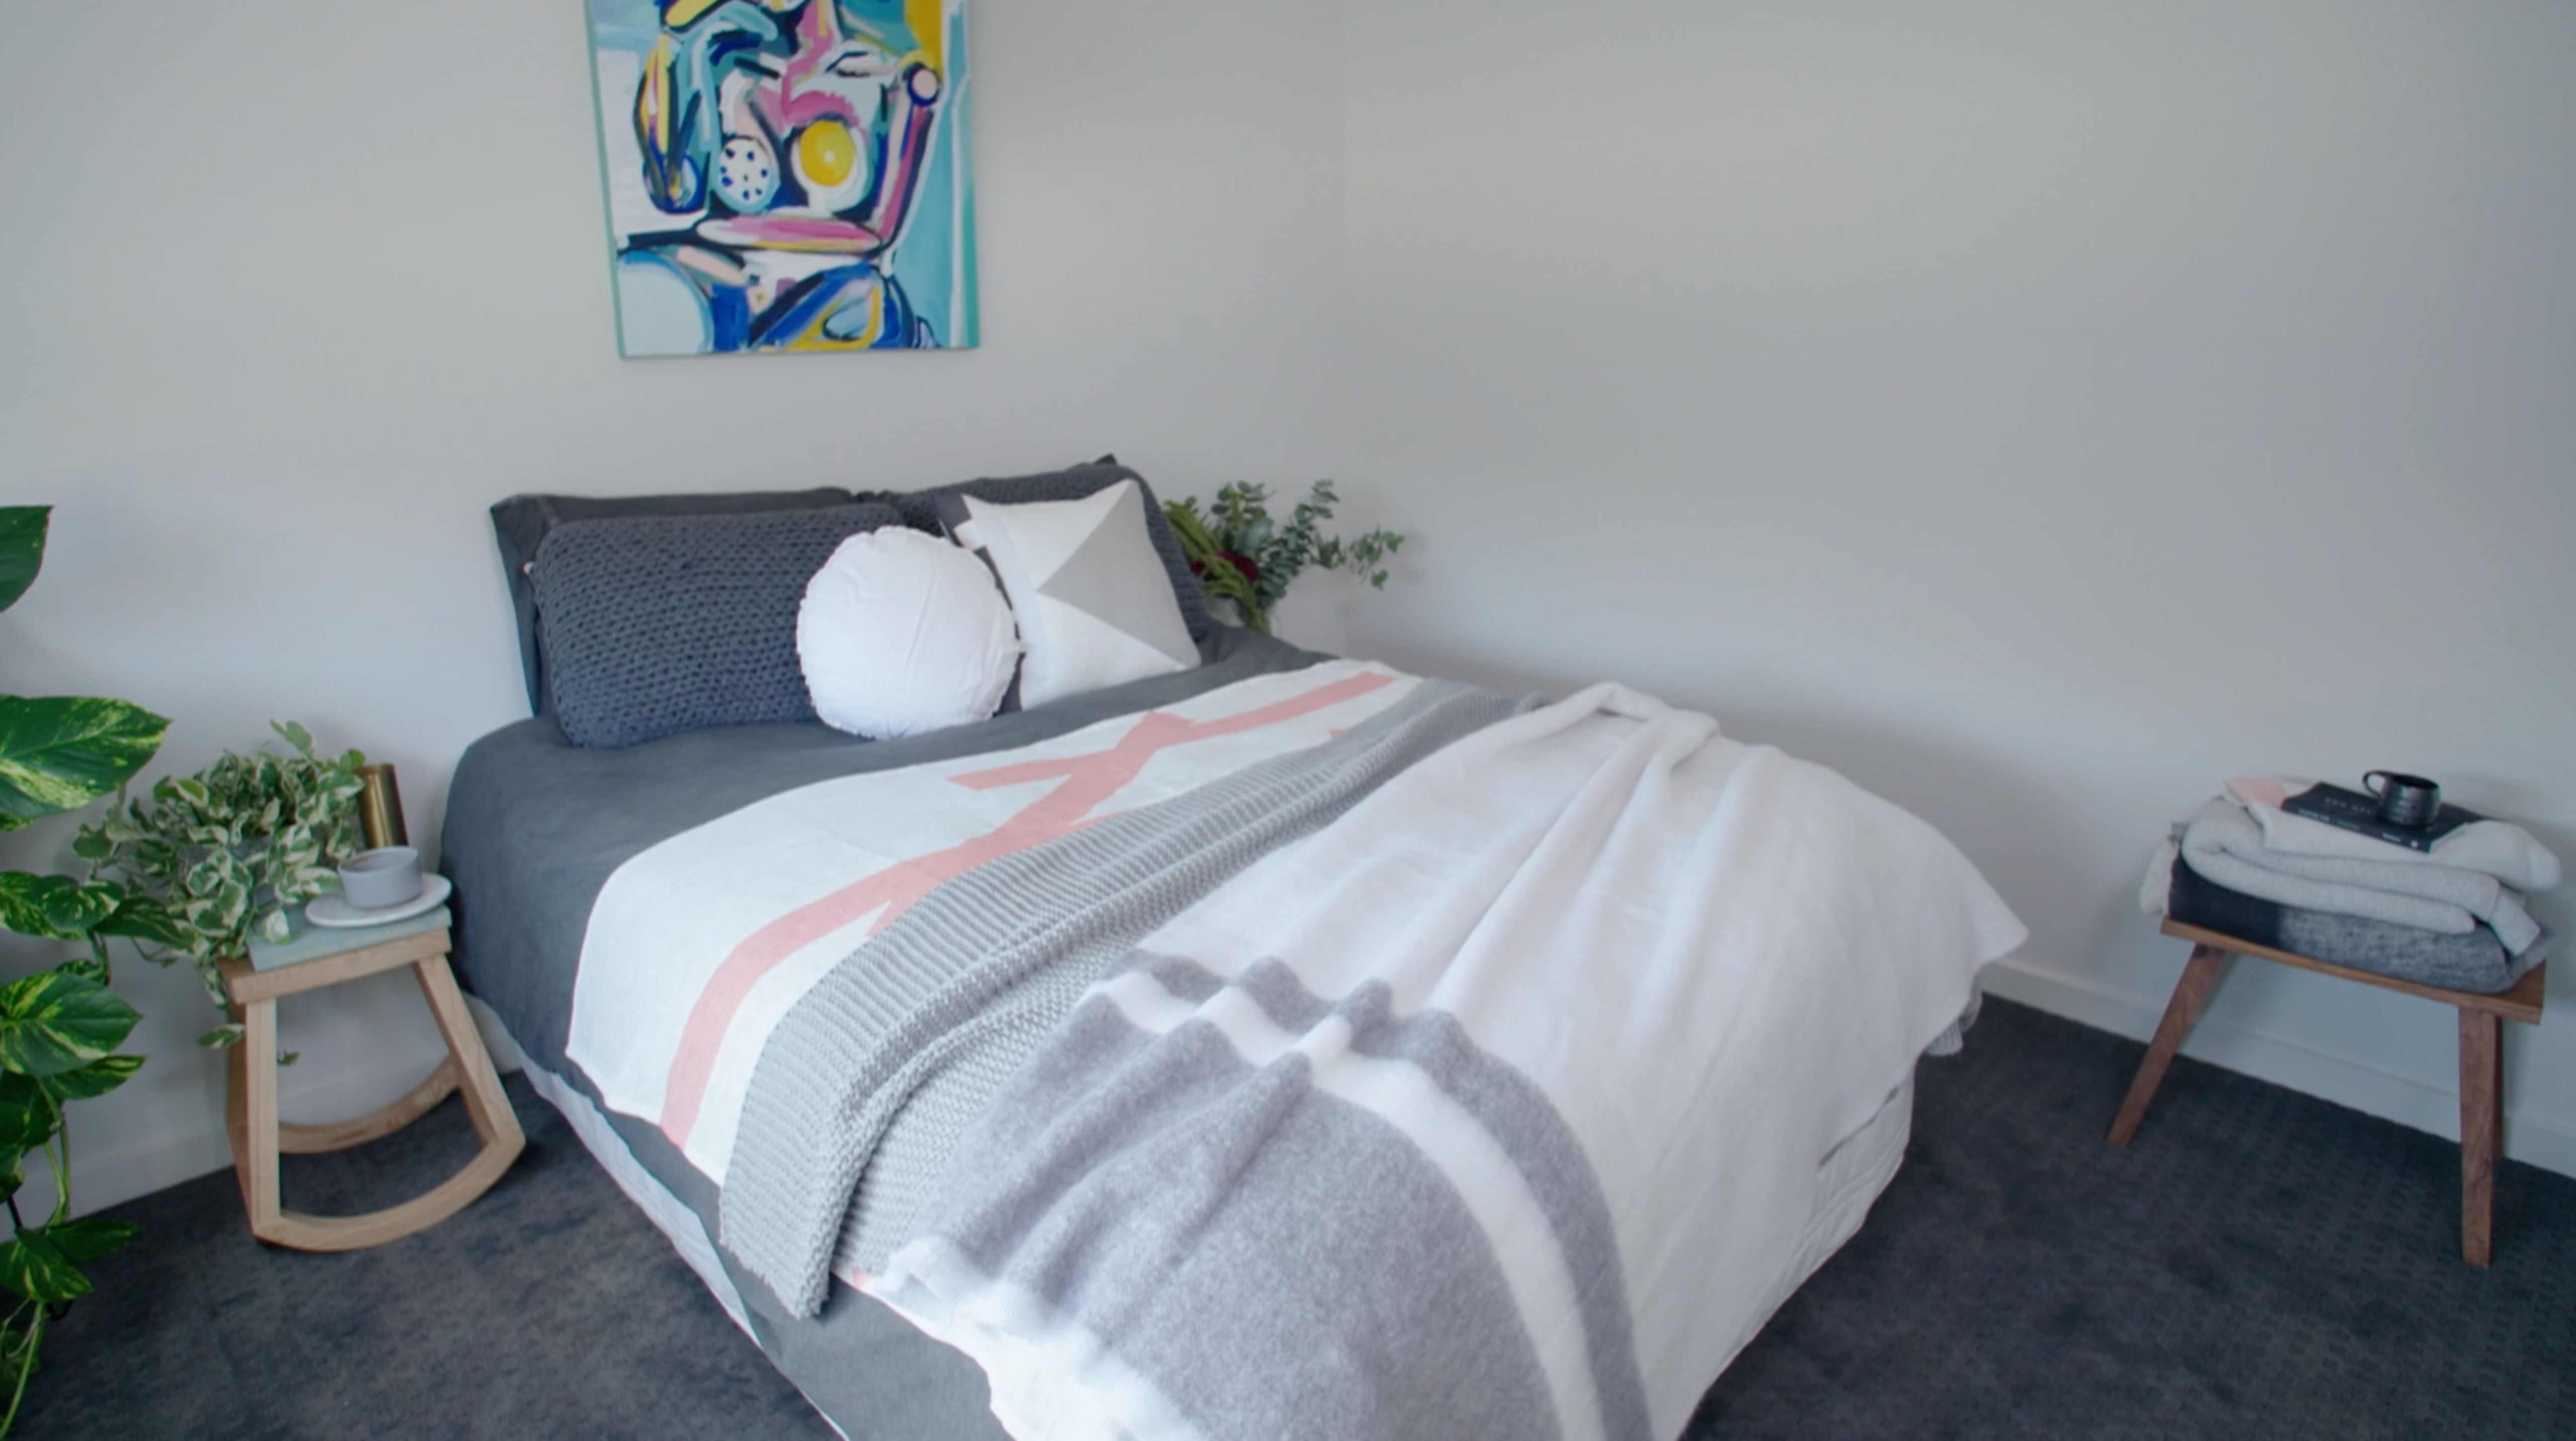 Watch the video of tips & tricks of bedroom styling by Dani Wales kateandkate.com.a... // #exhalebykateandkate #kkblankets #kklinen #kateandkate #design #inspiration #interiors #styling #blog